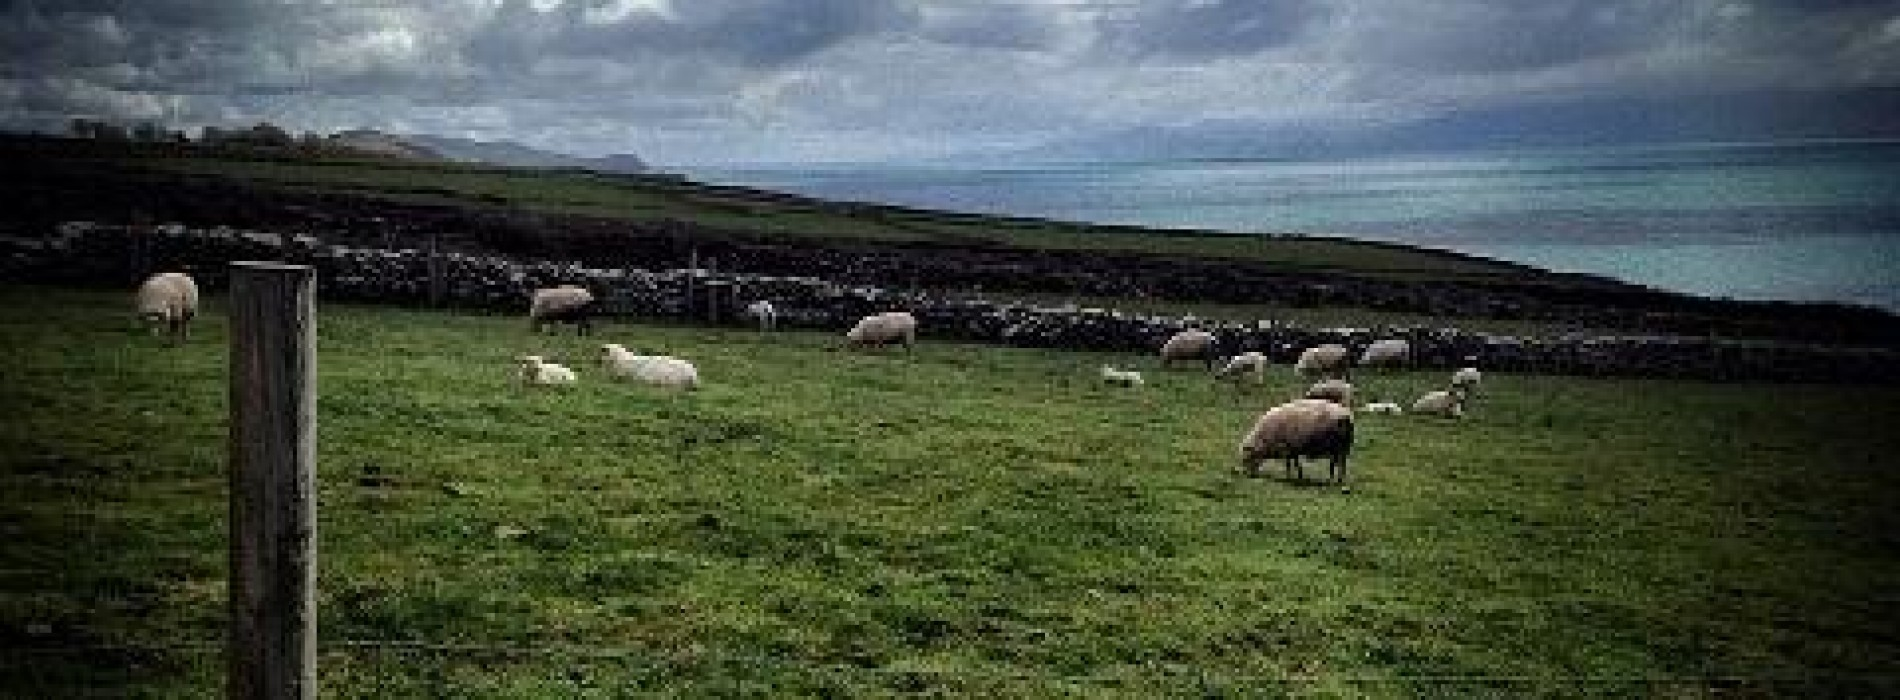 WANT A PIECE OF THE MOTHERLAND? YOU CAN NOW BUY ONE SQUARE FOOT OF IRISH LAND